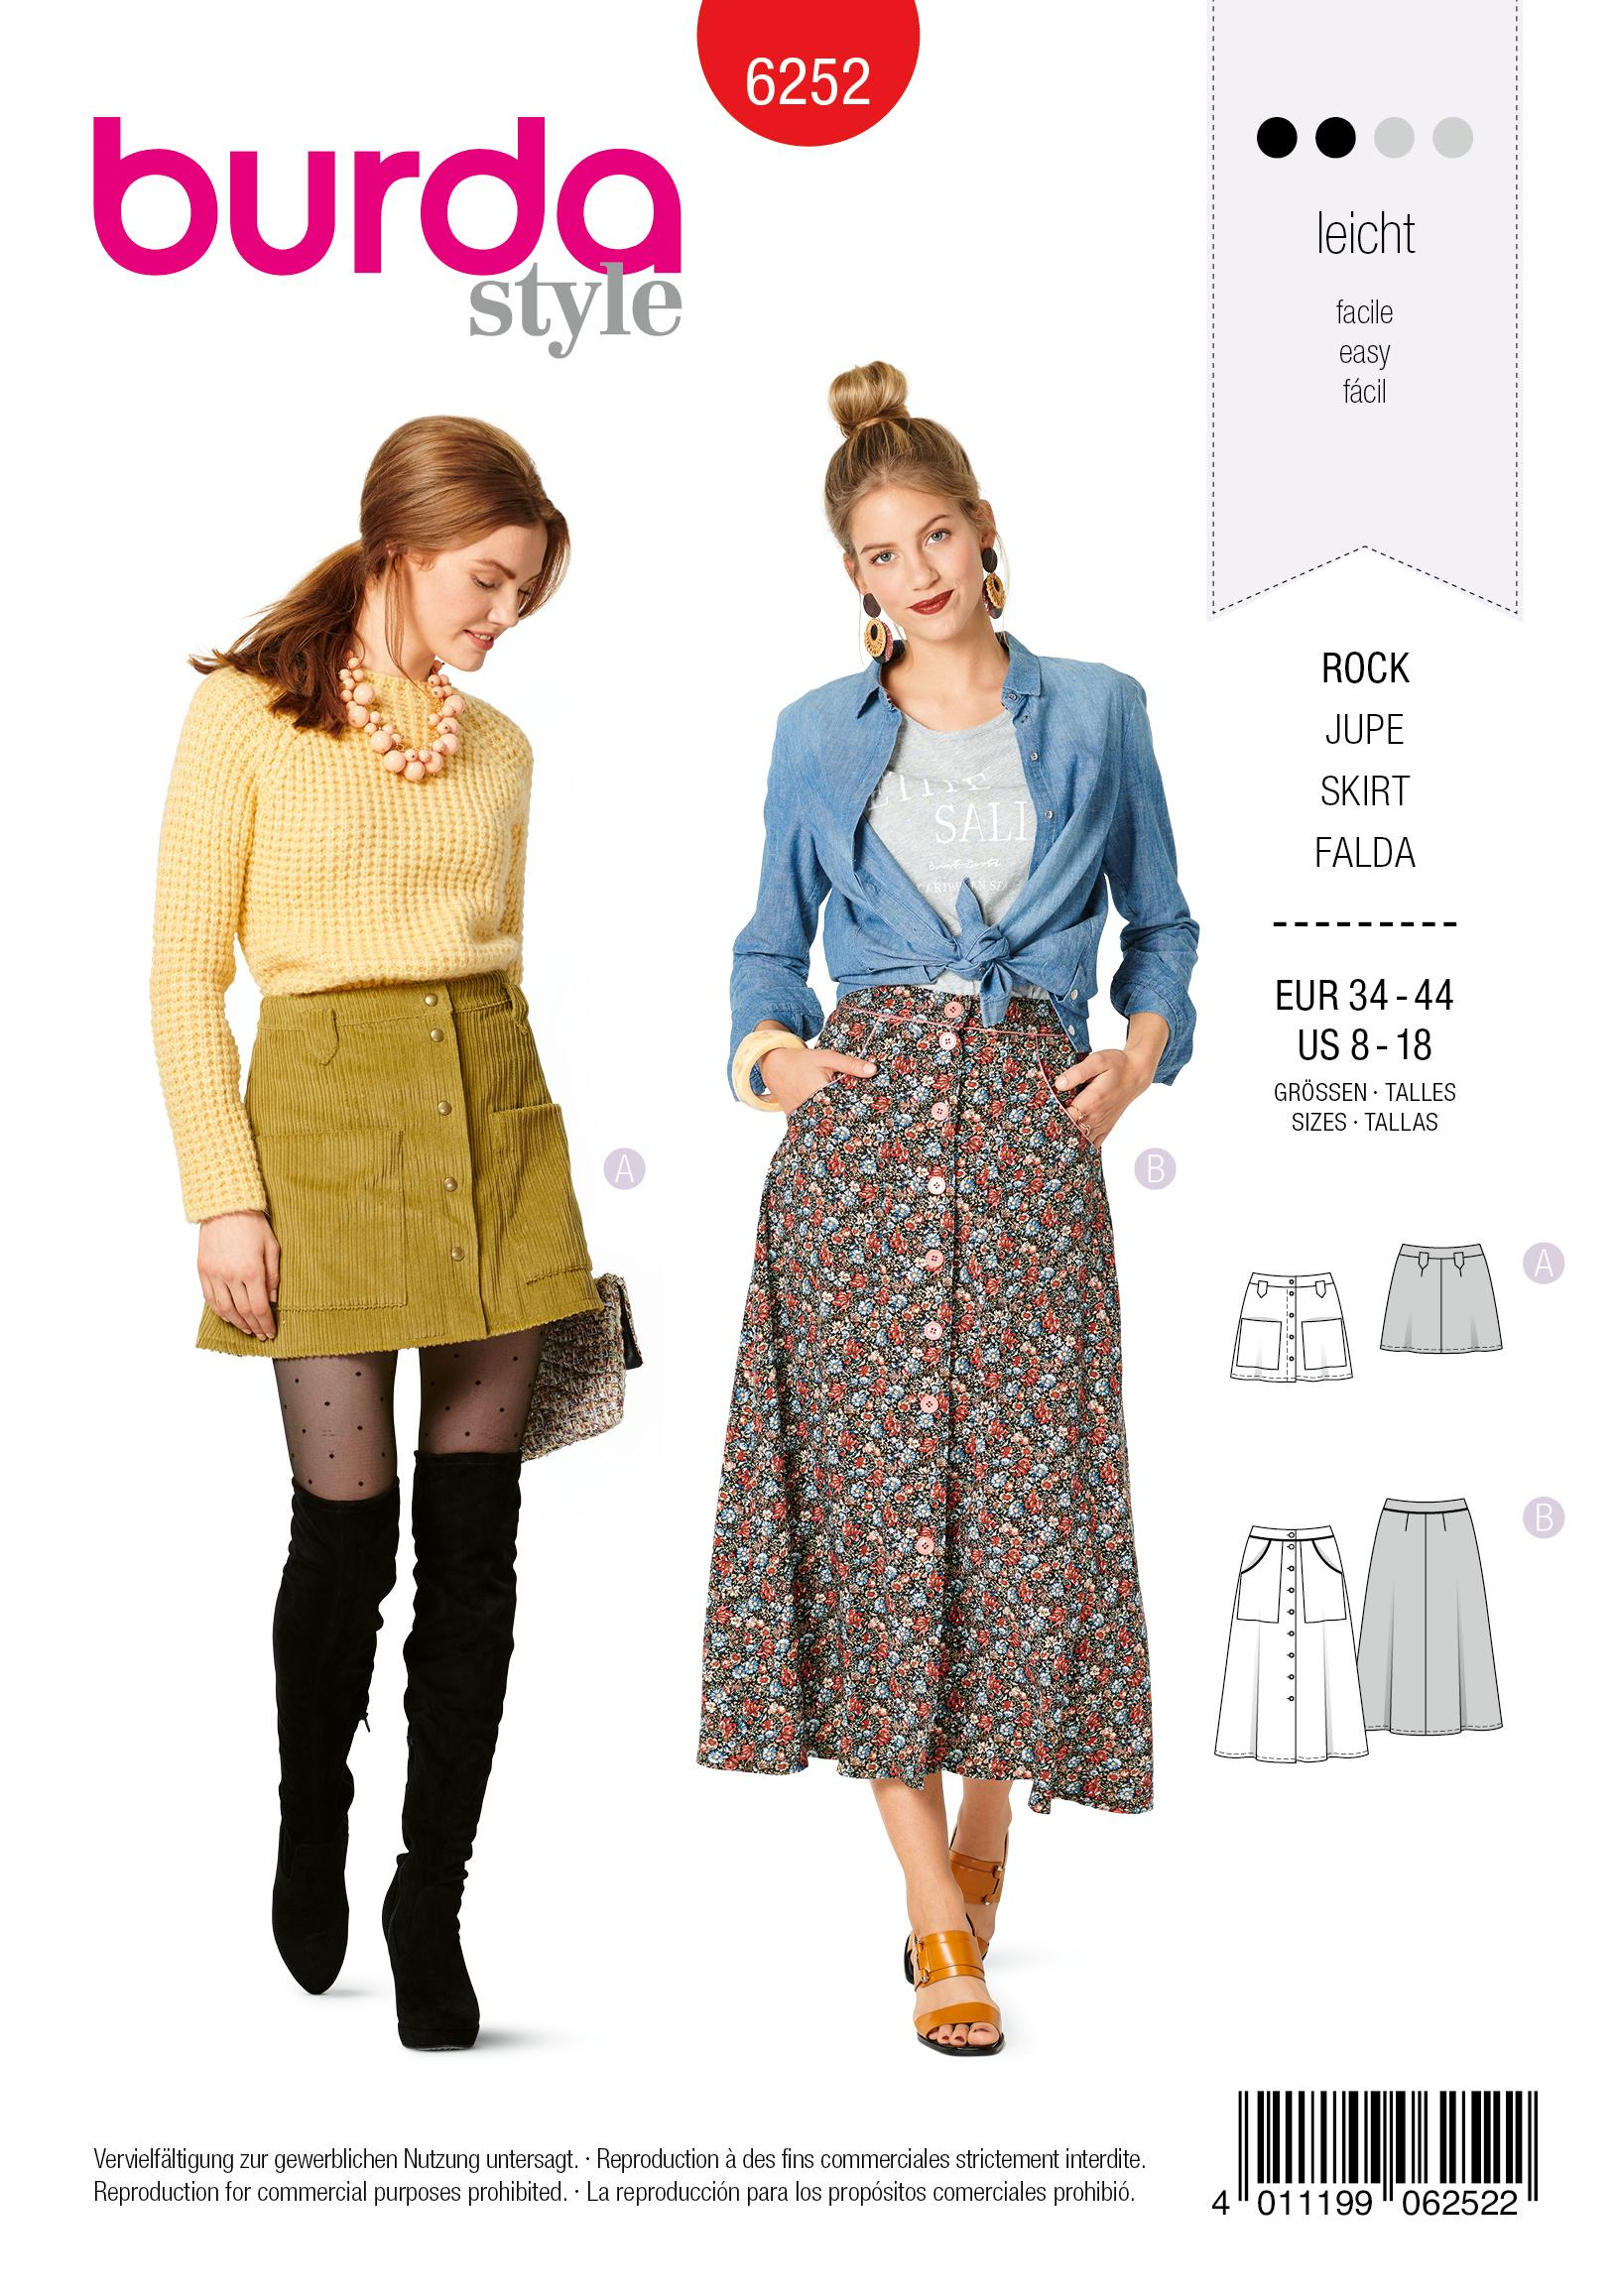 Burda 6252 Misses' Skirts, Front Fastening, Mini or Midi Length with Pocket Variations